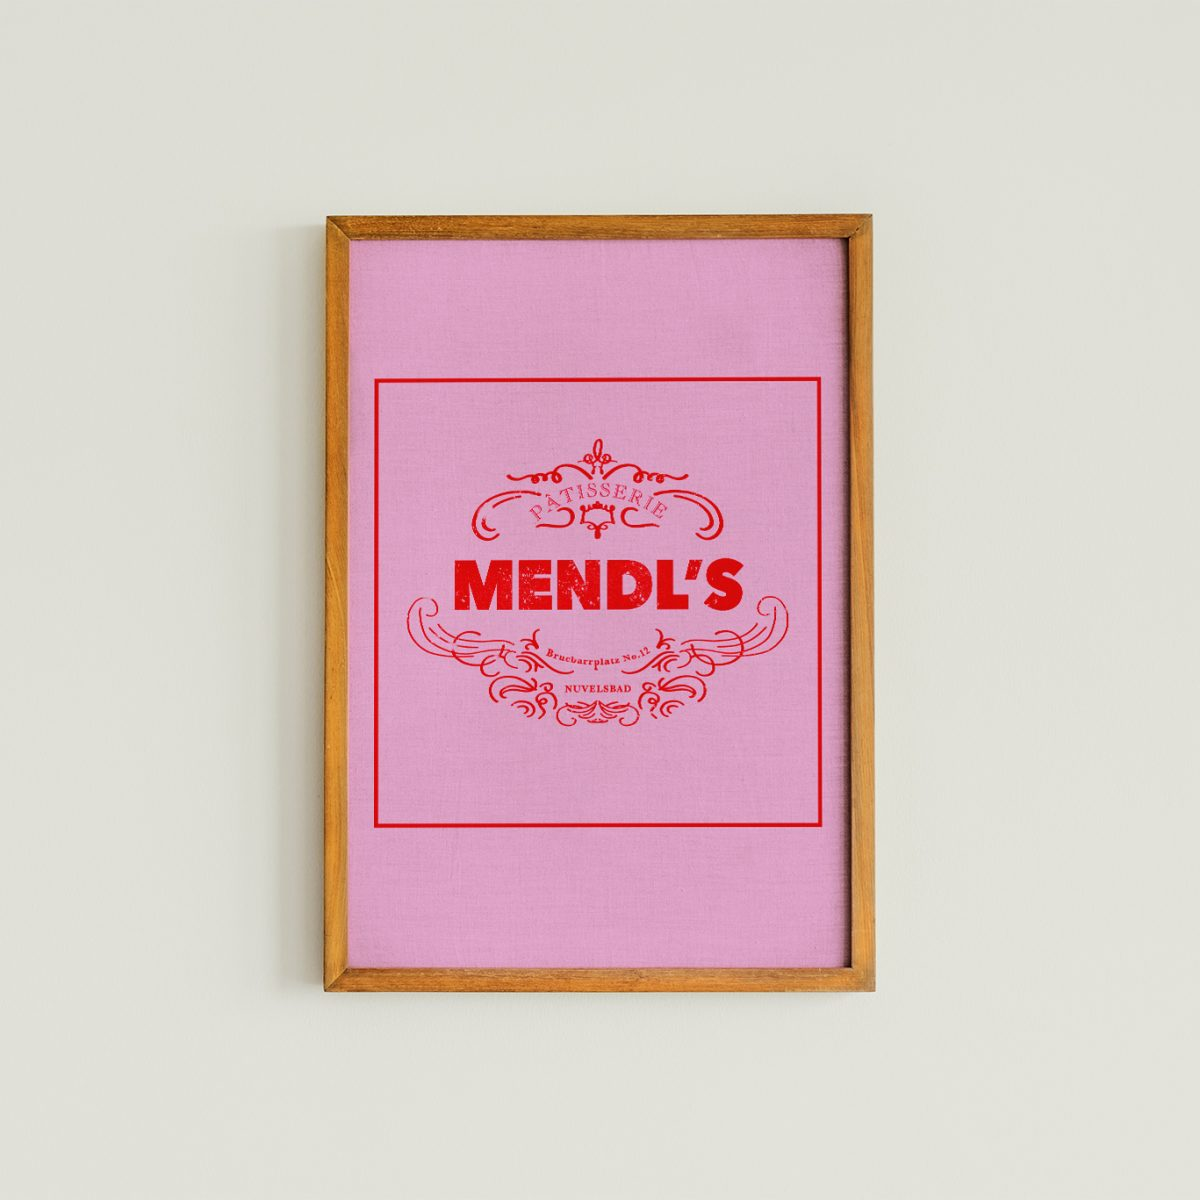 Pink Mendl's bakery box from Wed Anderson's Grand Budapest Hotel, Art print with a wooden frame